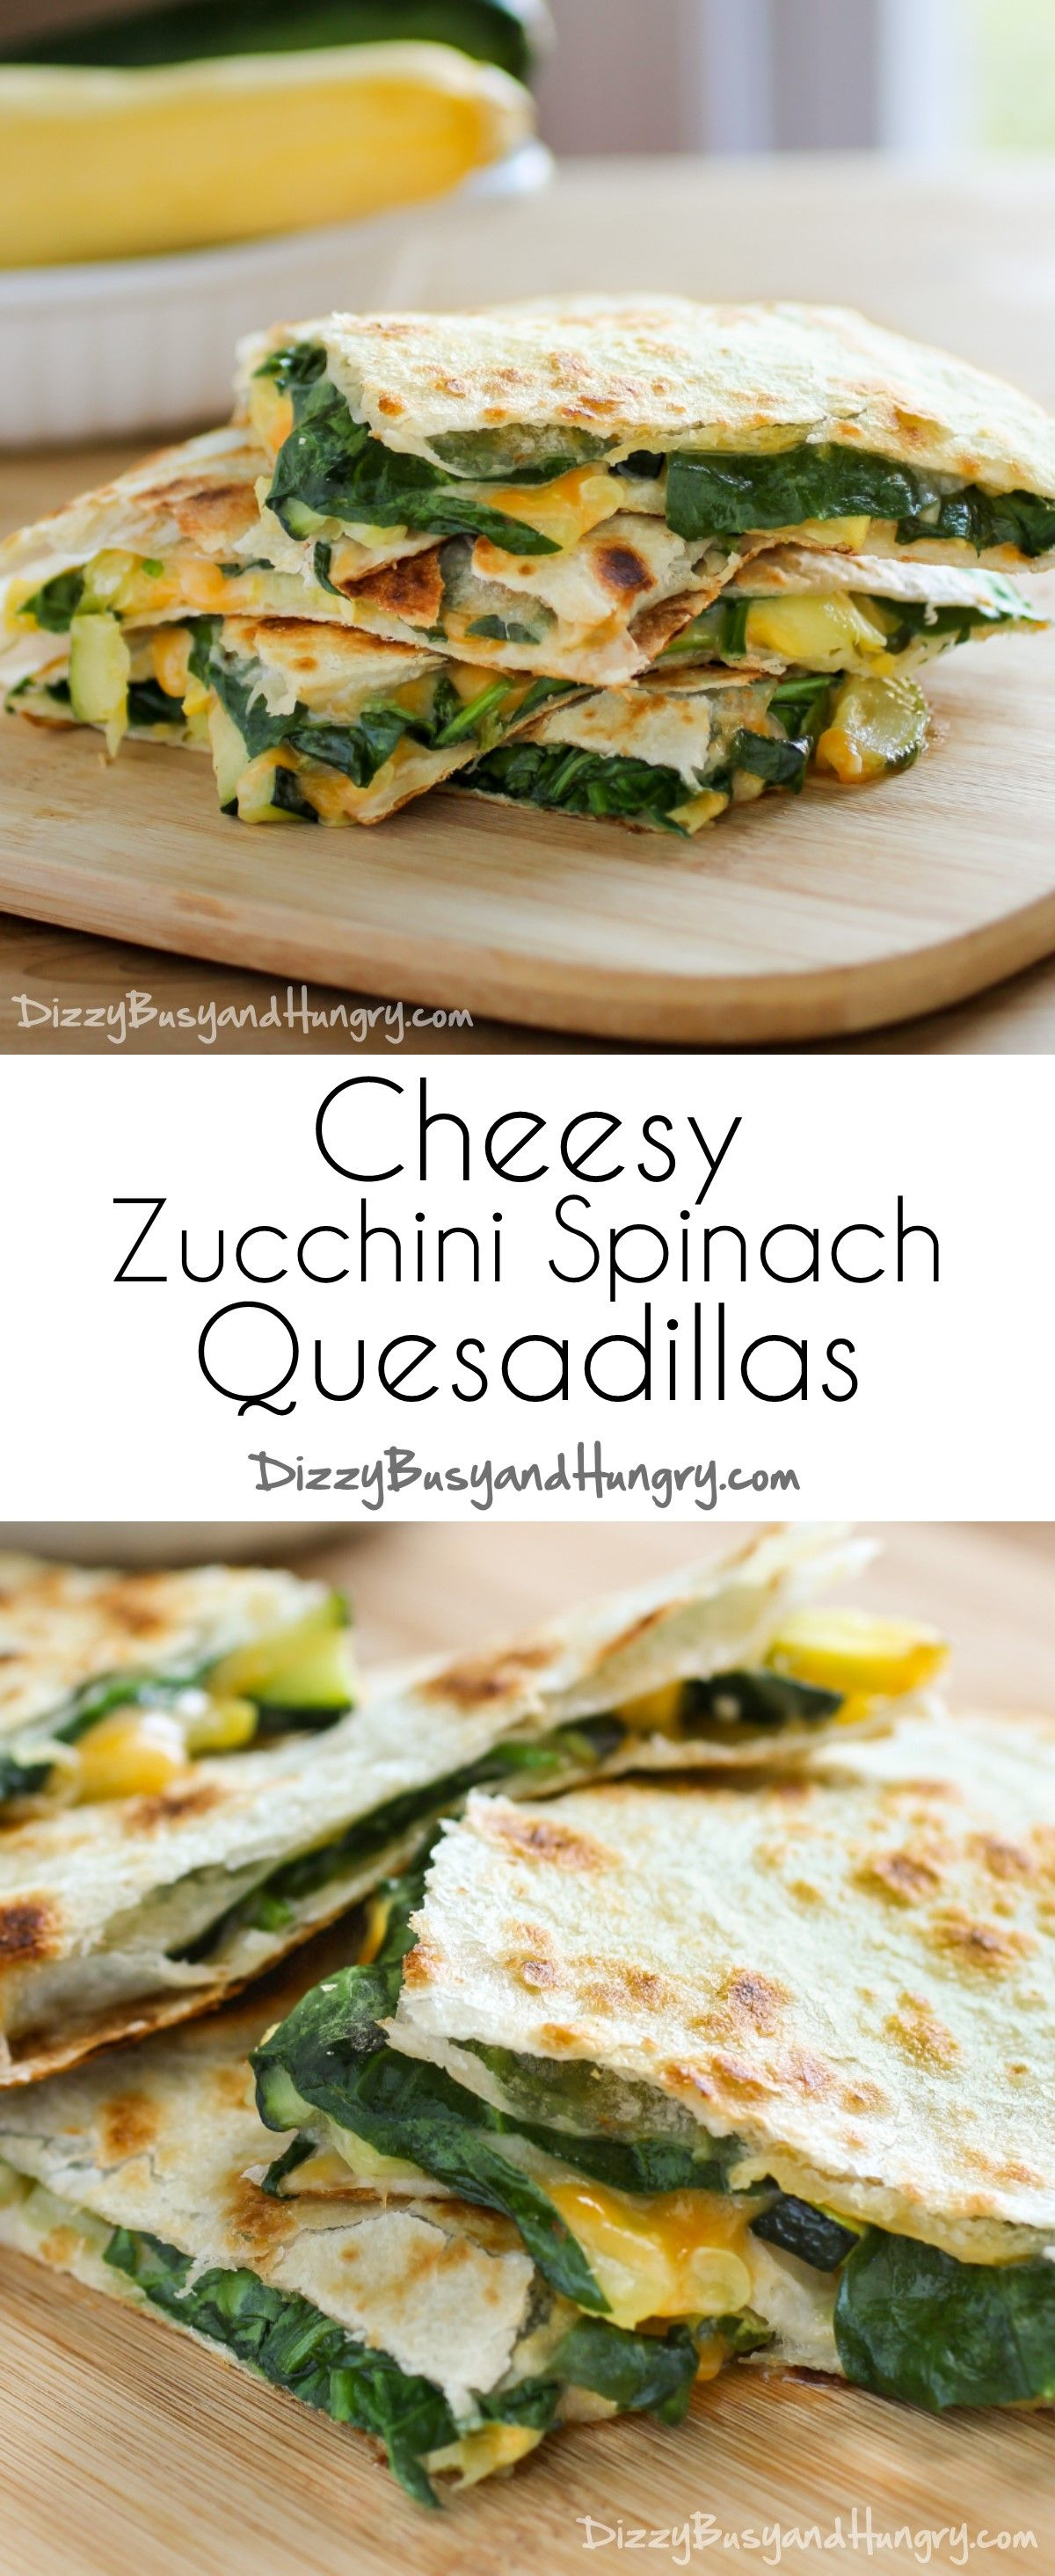 Cheesy Zucchini Spinach Quesadillas - Your kids will actually REQUEST this dinner, even though it is chock full of veggies!